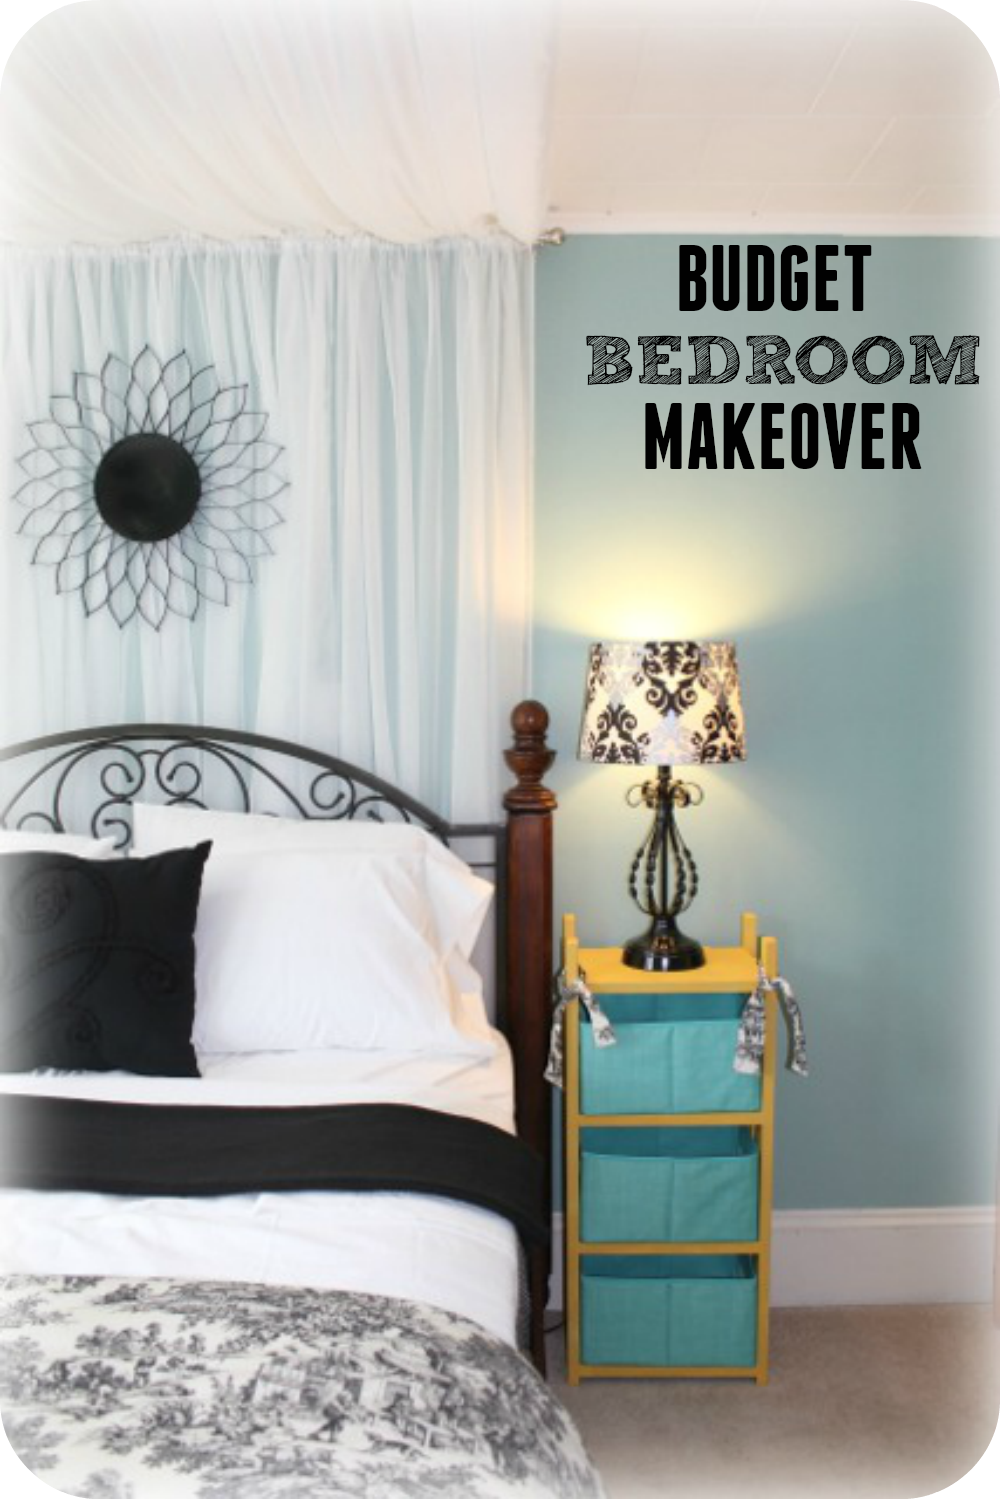 Budget bedroom ideas - How to decorate your bedroom on a budget ...